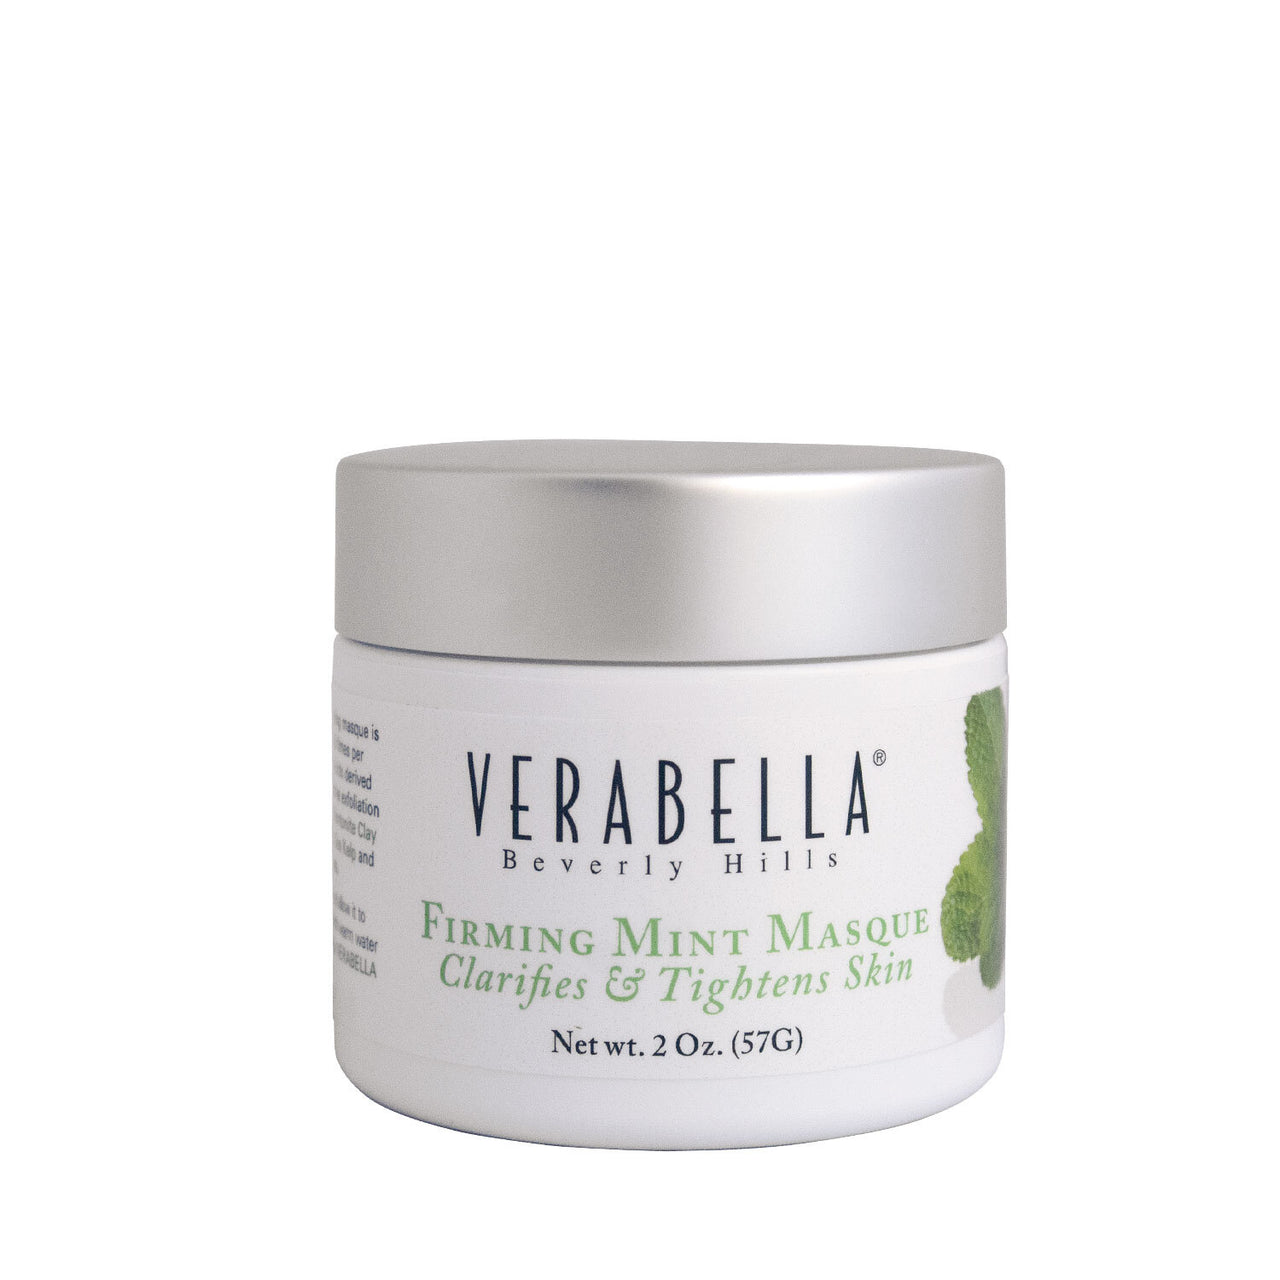 Firming Mint Masque - clarifying mask tightens skin